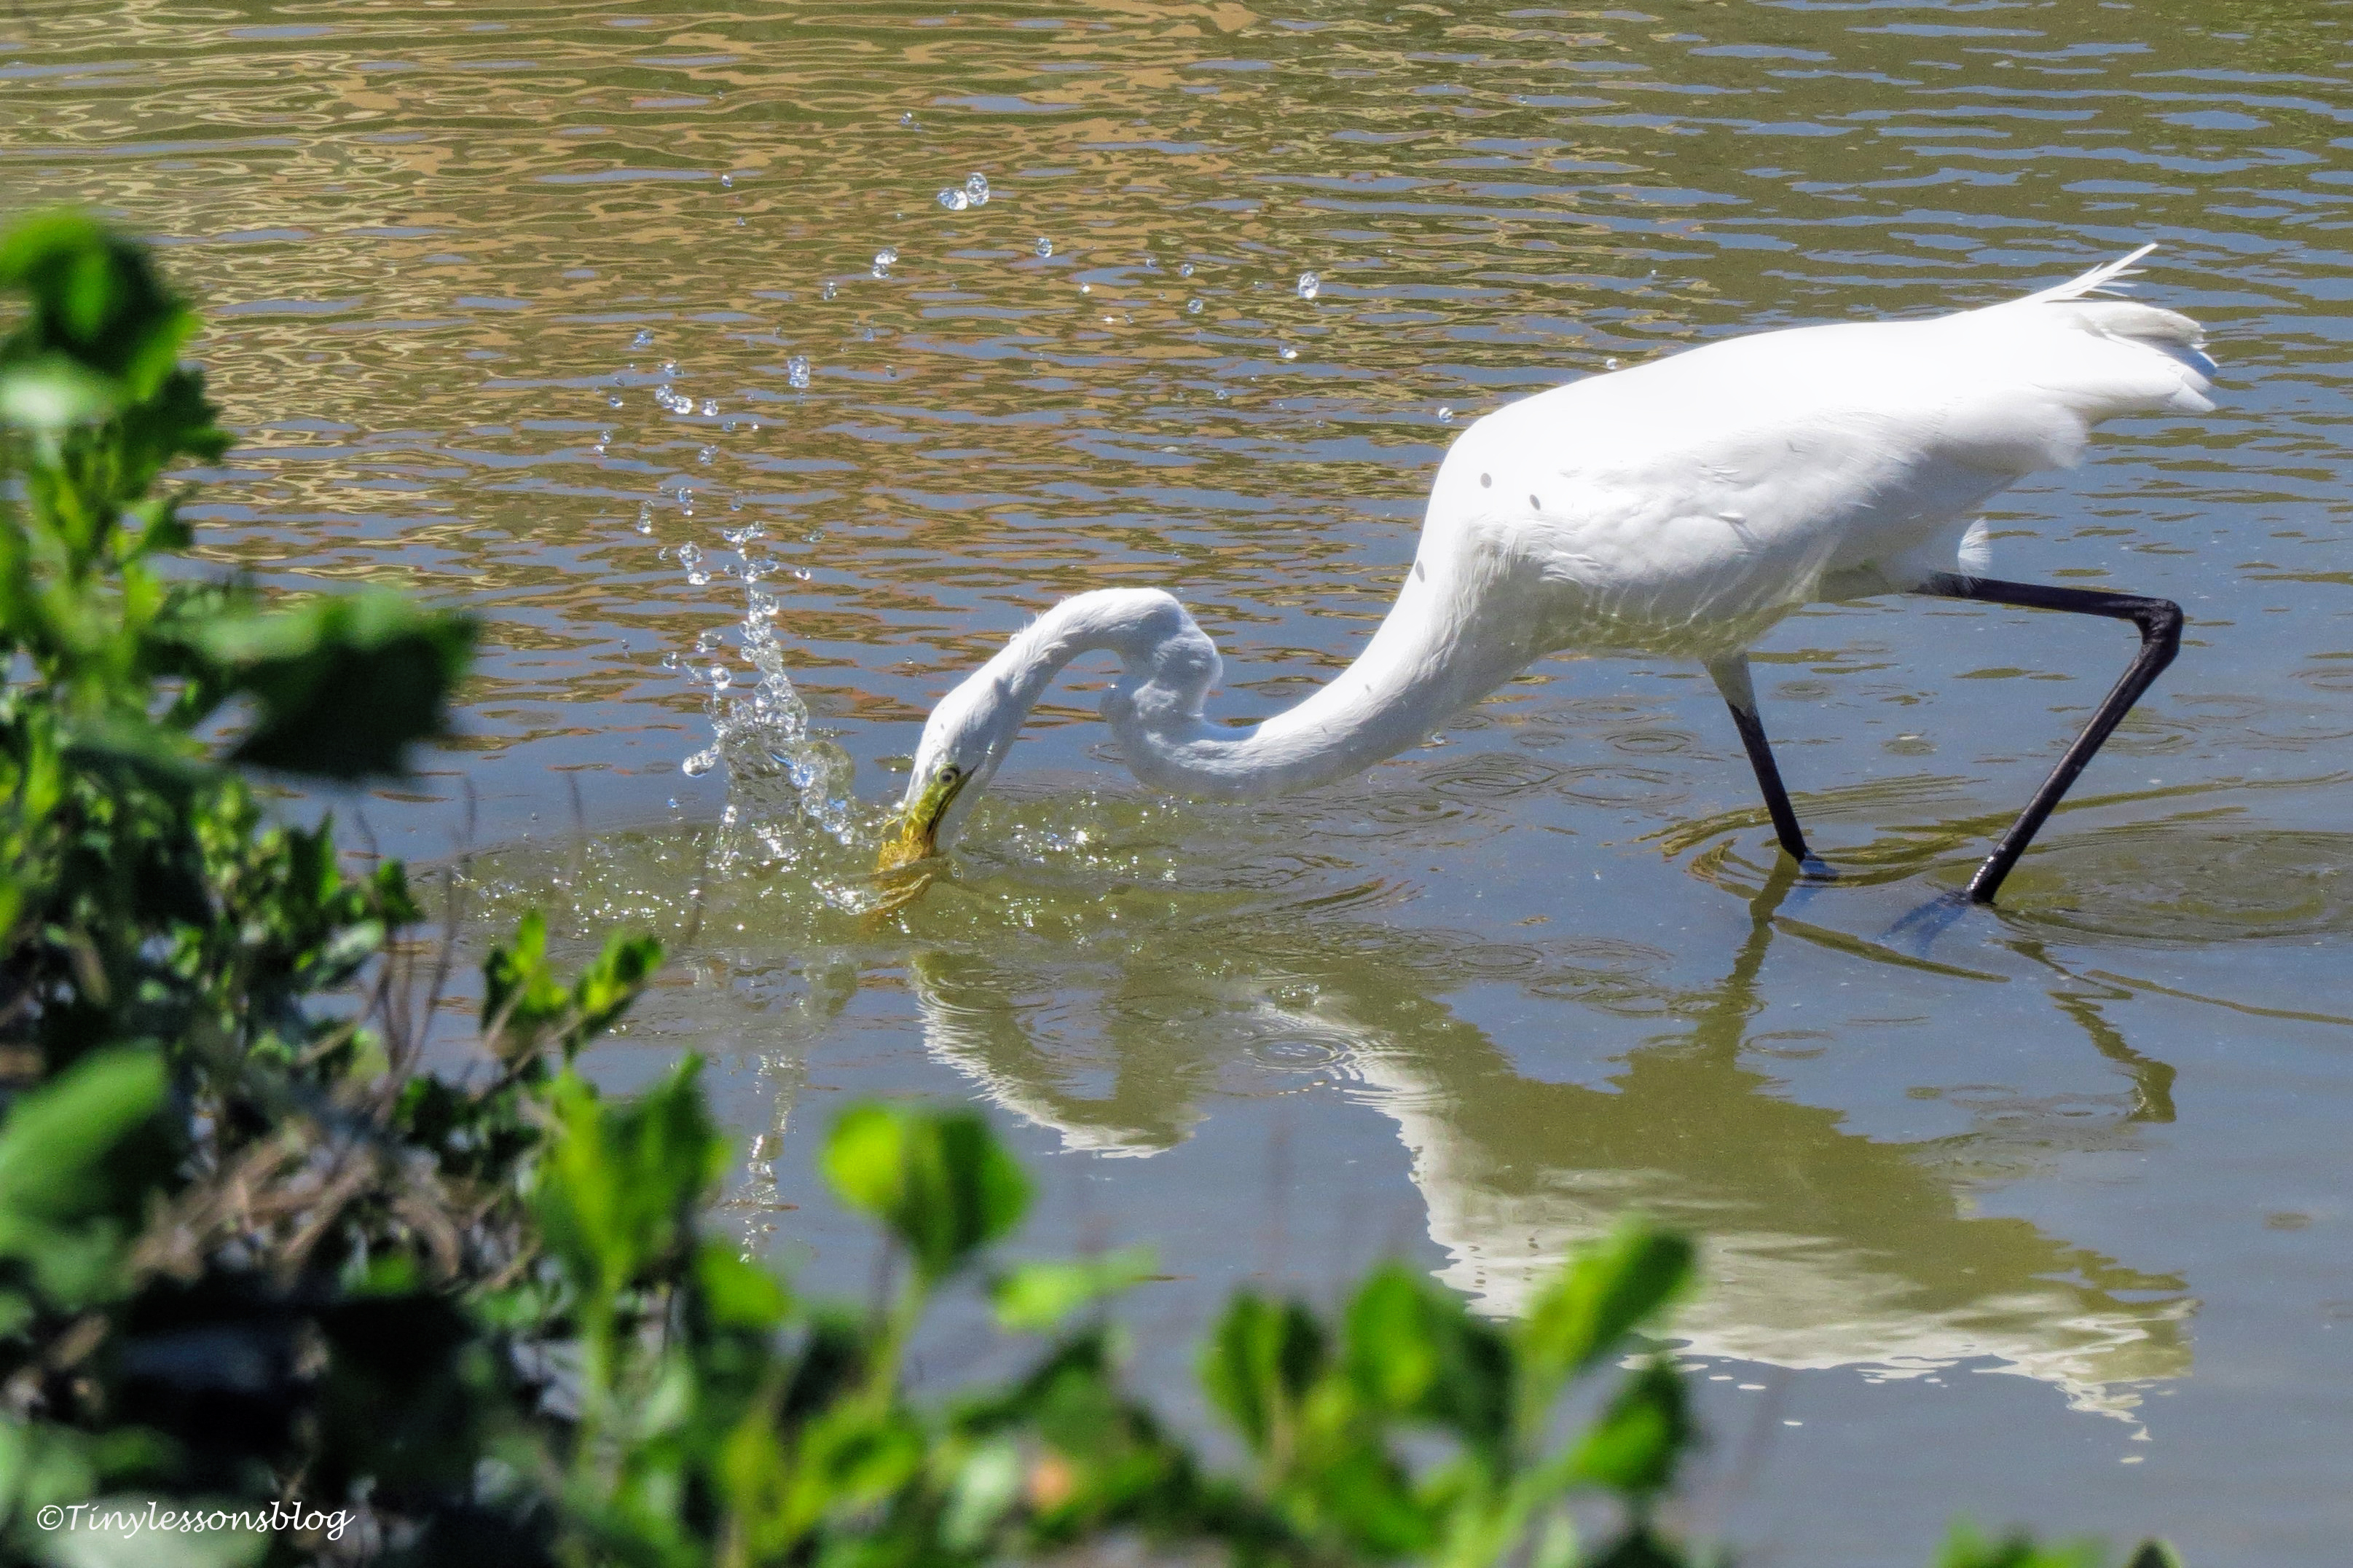 a Great Egret fishing ud153